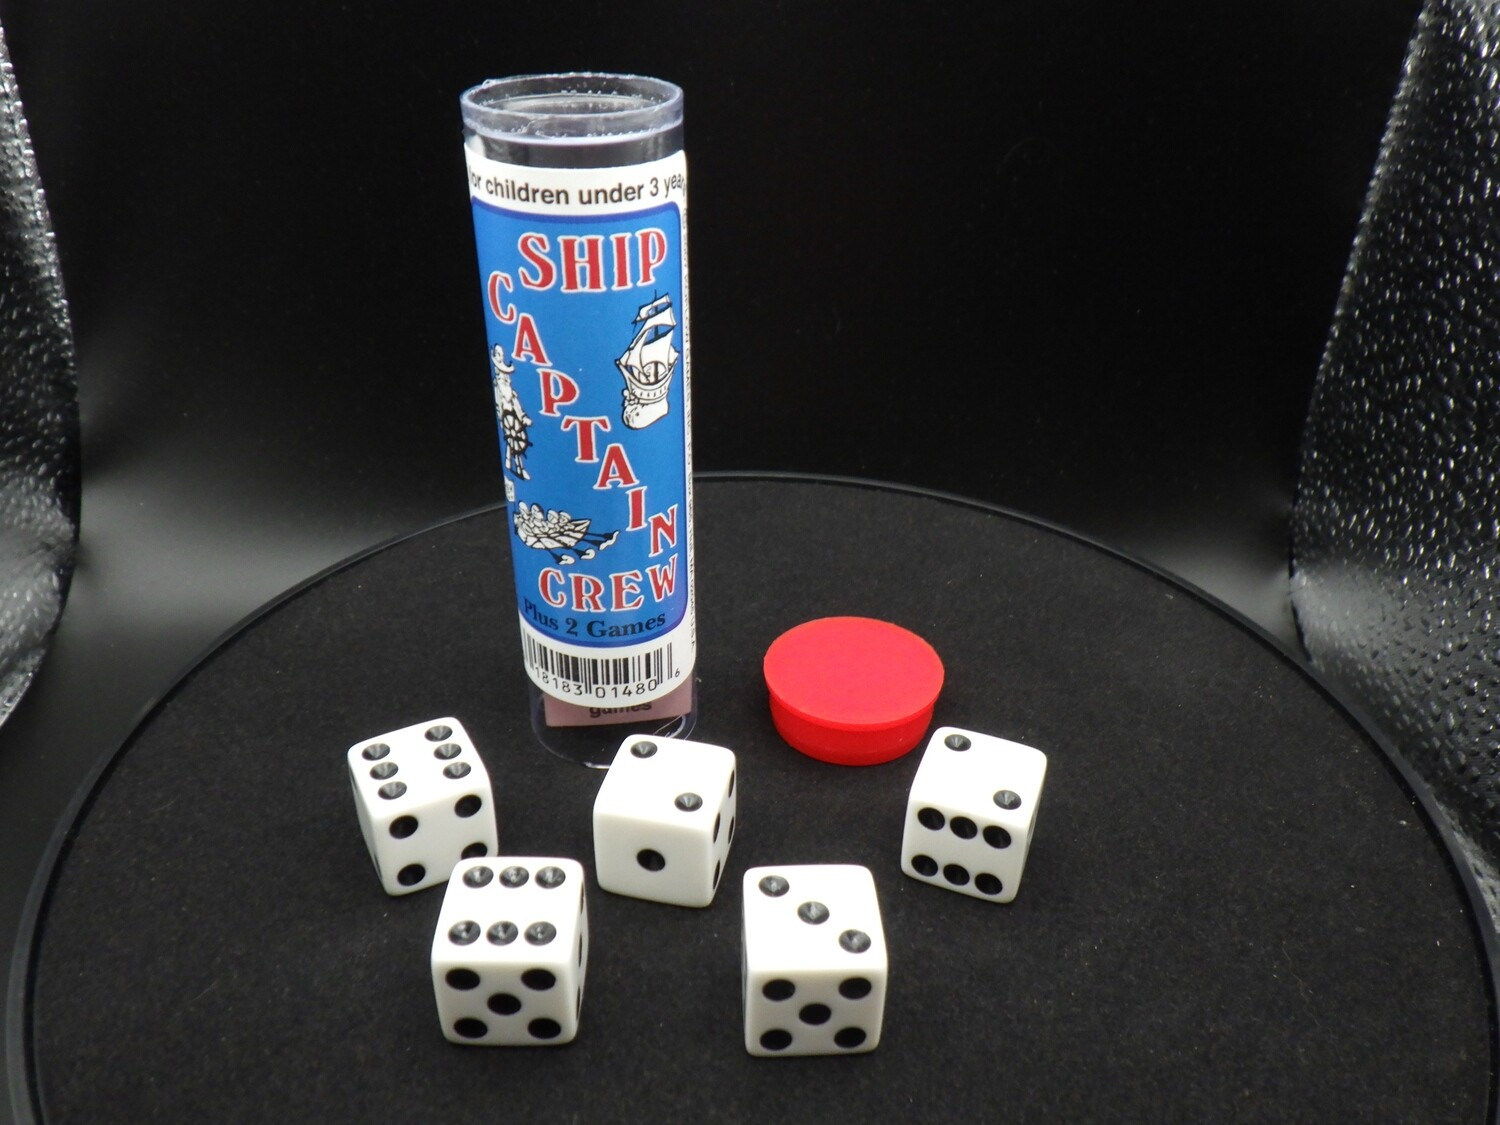 Ship Captain Crew Dice Game - Instructions with 5 Dice Tabletop Gaming